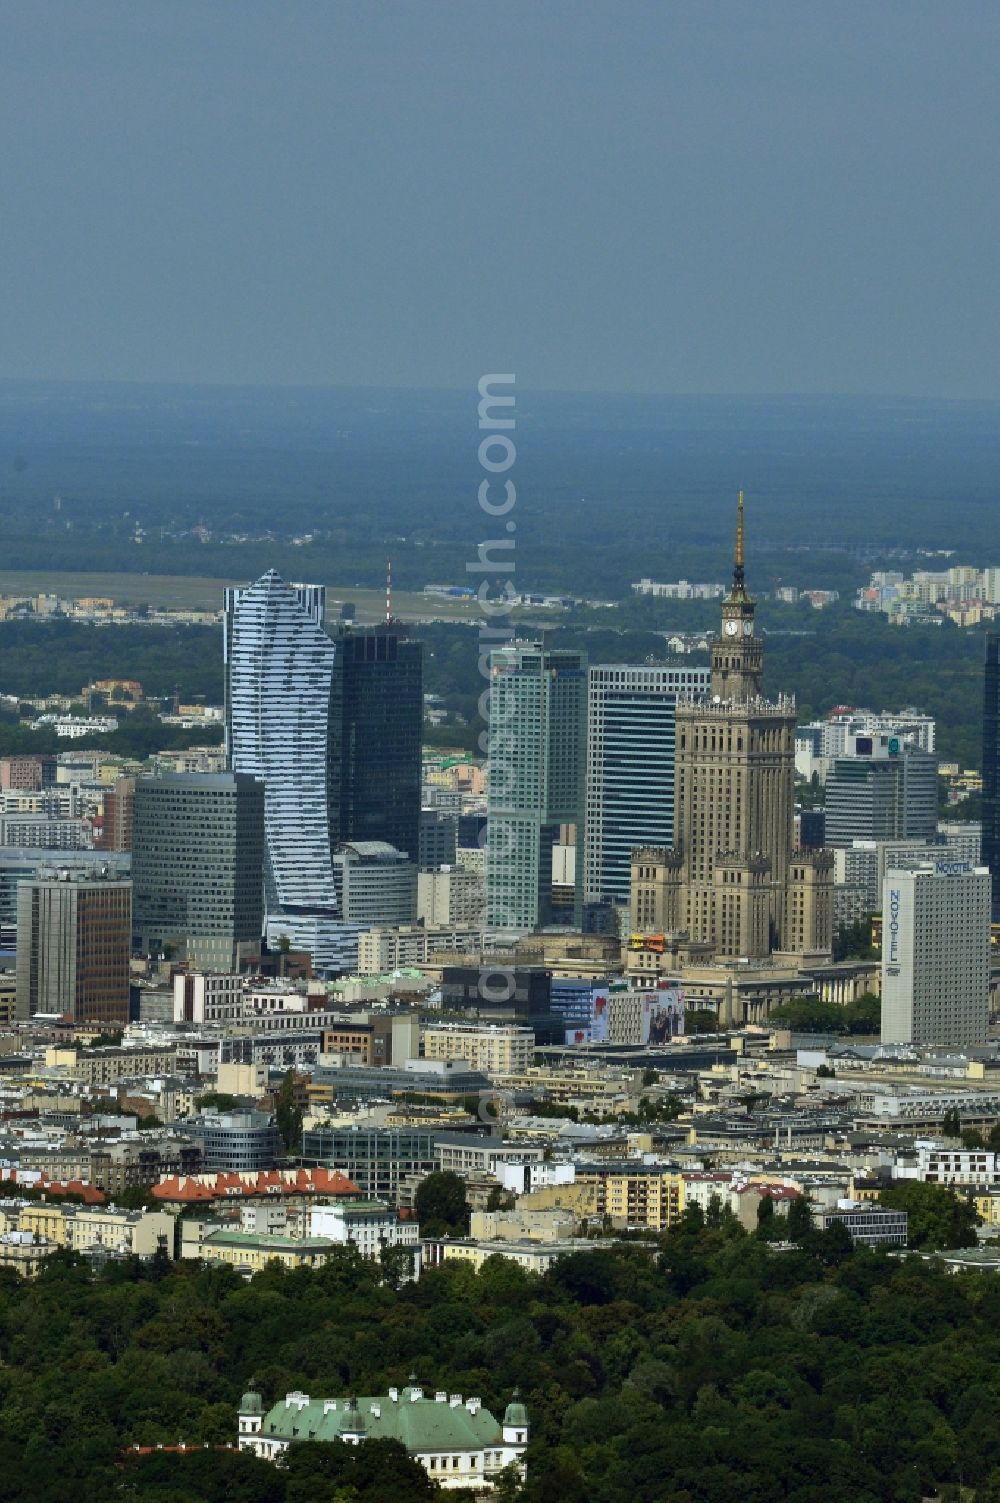 Warschau from the bird's eye view: Skyscraper skyline in the city center of Warsaw in Poland. The series of buildings ranging from the landmark high-rise buildings of the Palace of Culture and Science, the Zlota 44, Blue Tower Plaza; Hotel Inter-Continental; Warsaw Financial Center; Rondo 1-B; Oxford Tower and other.